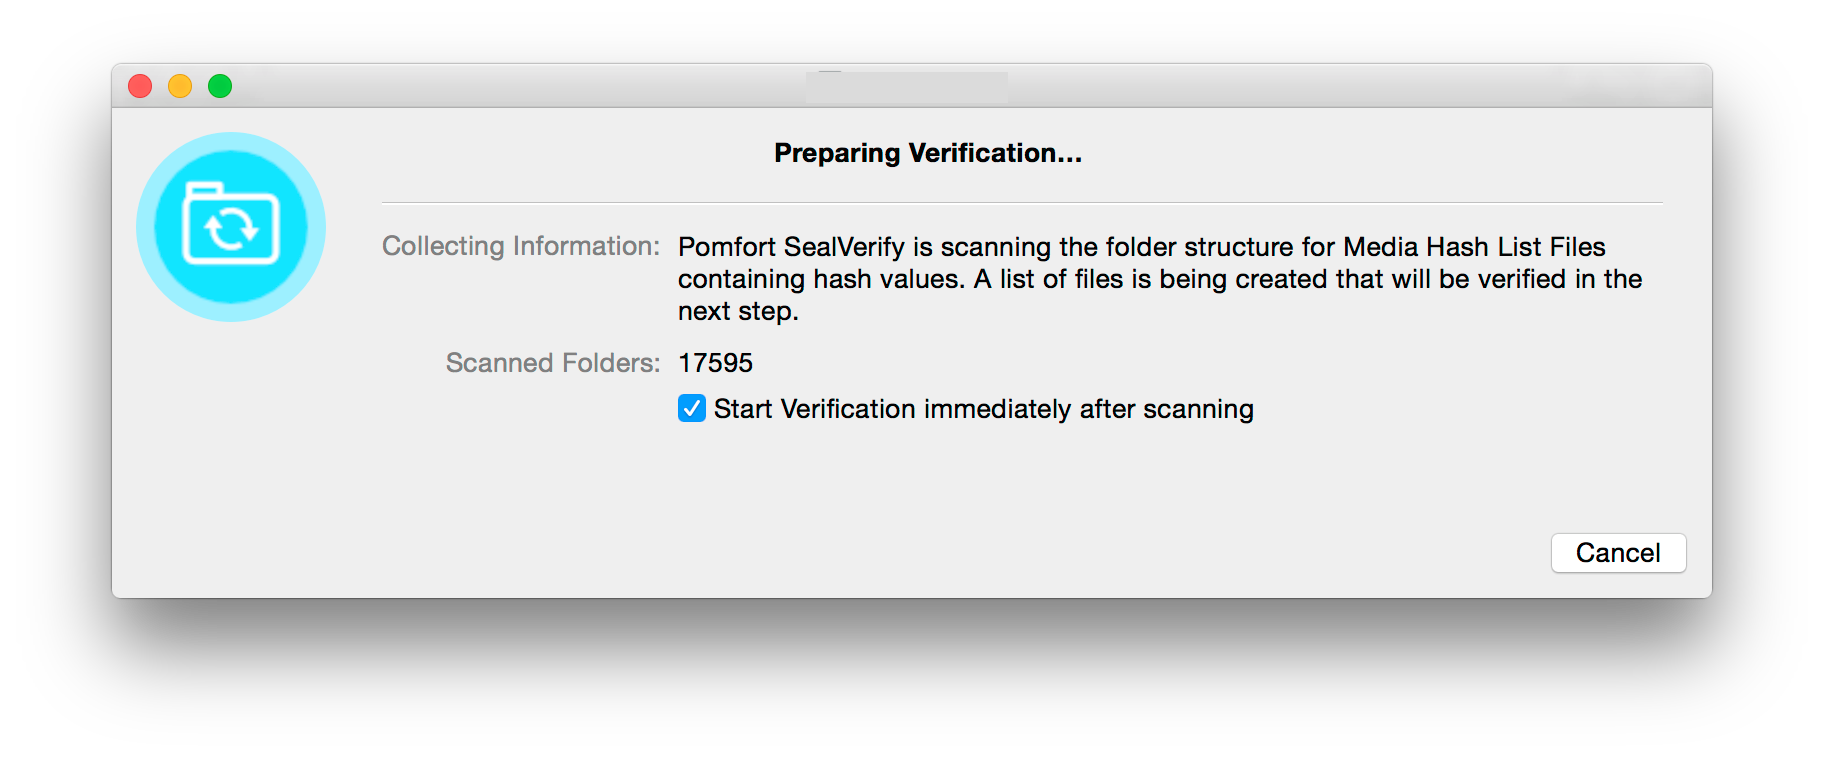 Fig. 8: Preparing verification and looking for Pomfort Seal or mhl files